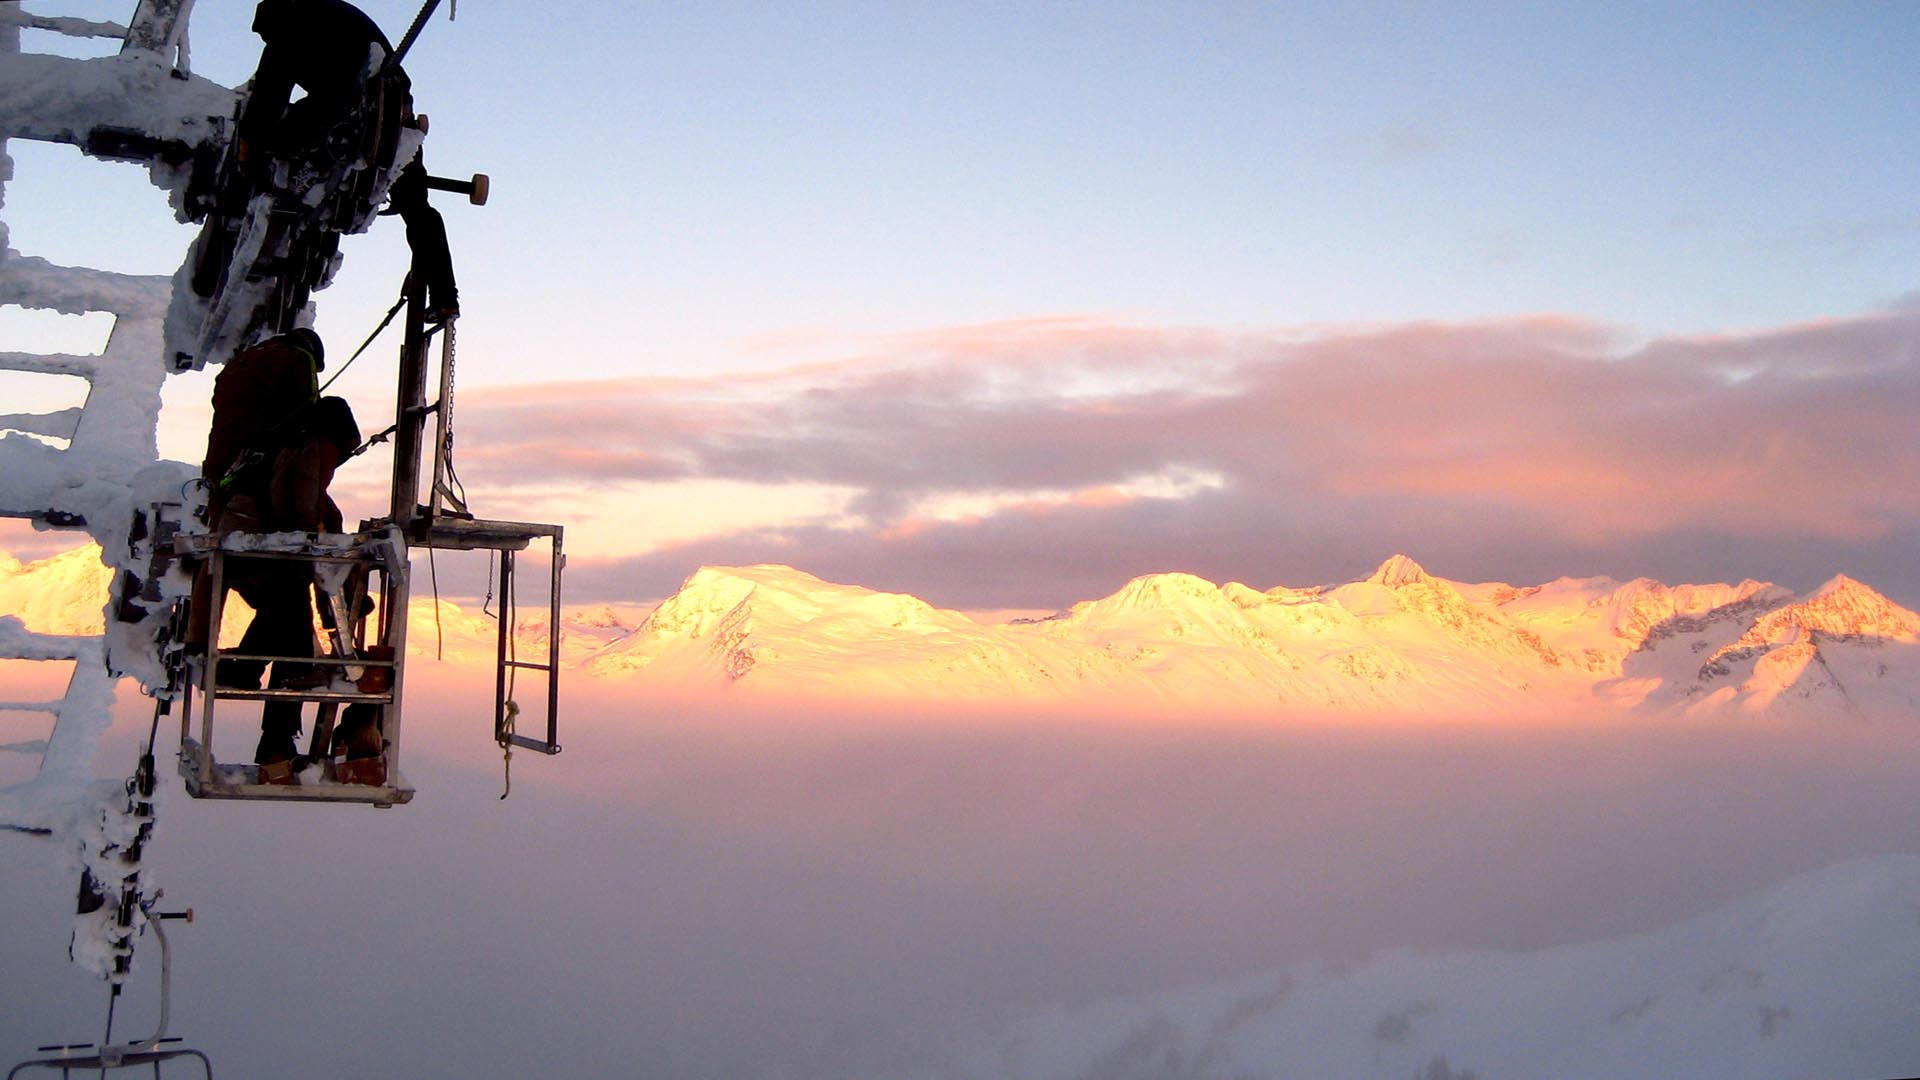 How I Got My Dream Job as a Ski Lift Engineer